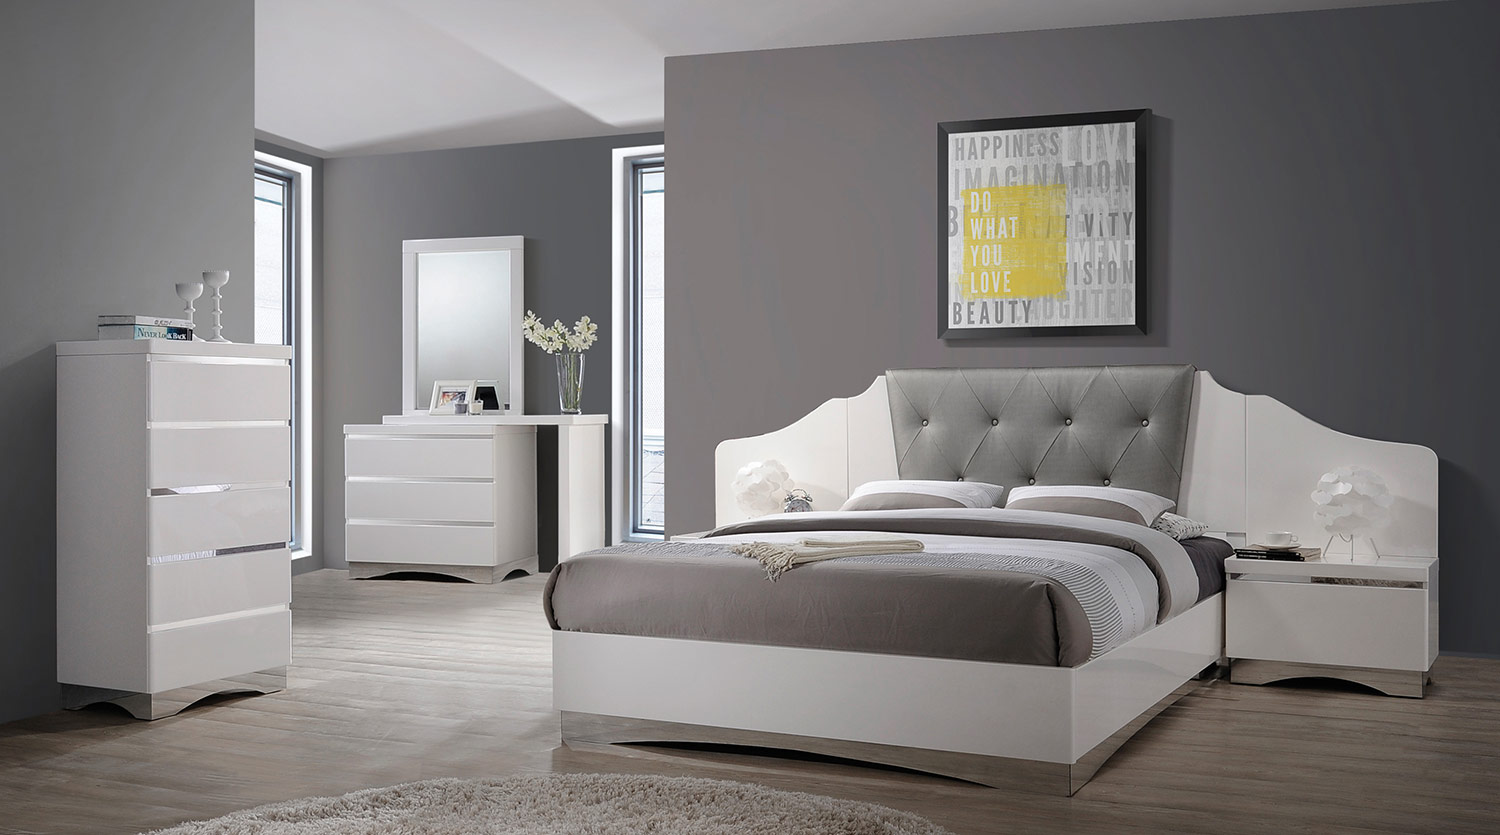 Coaster Alessandro Upholstered Bedroom Set - Glossy White